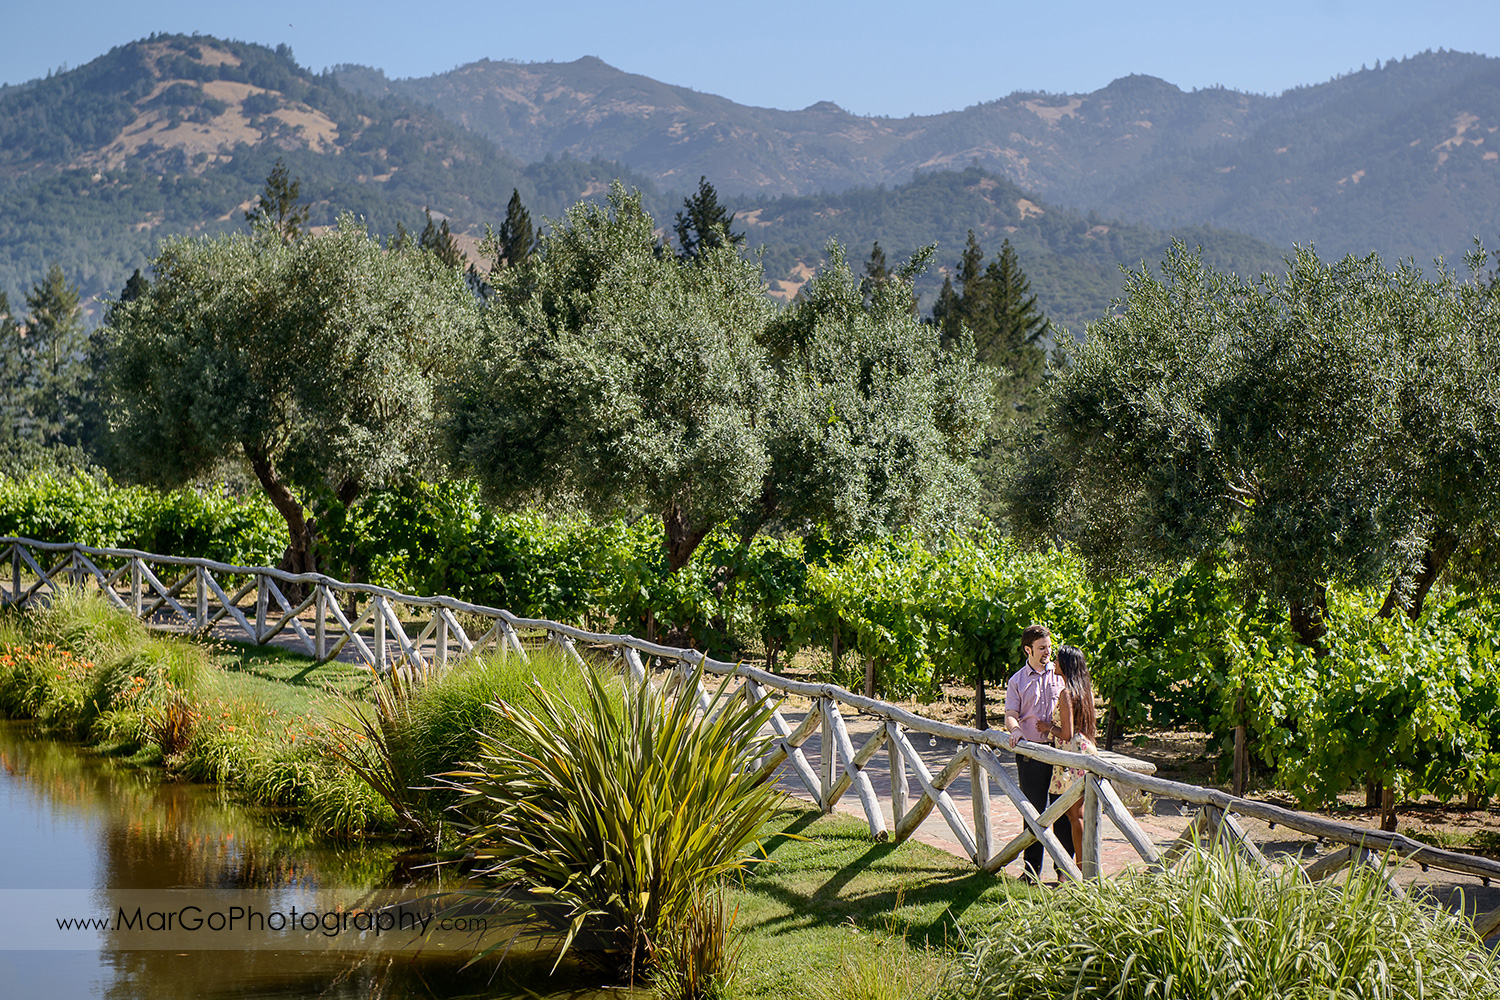 man in pink shirt and Indian woman in flower dress looking at each other behind the wooden fence during engagement session at Castello di Amorosa in Calistoga